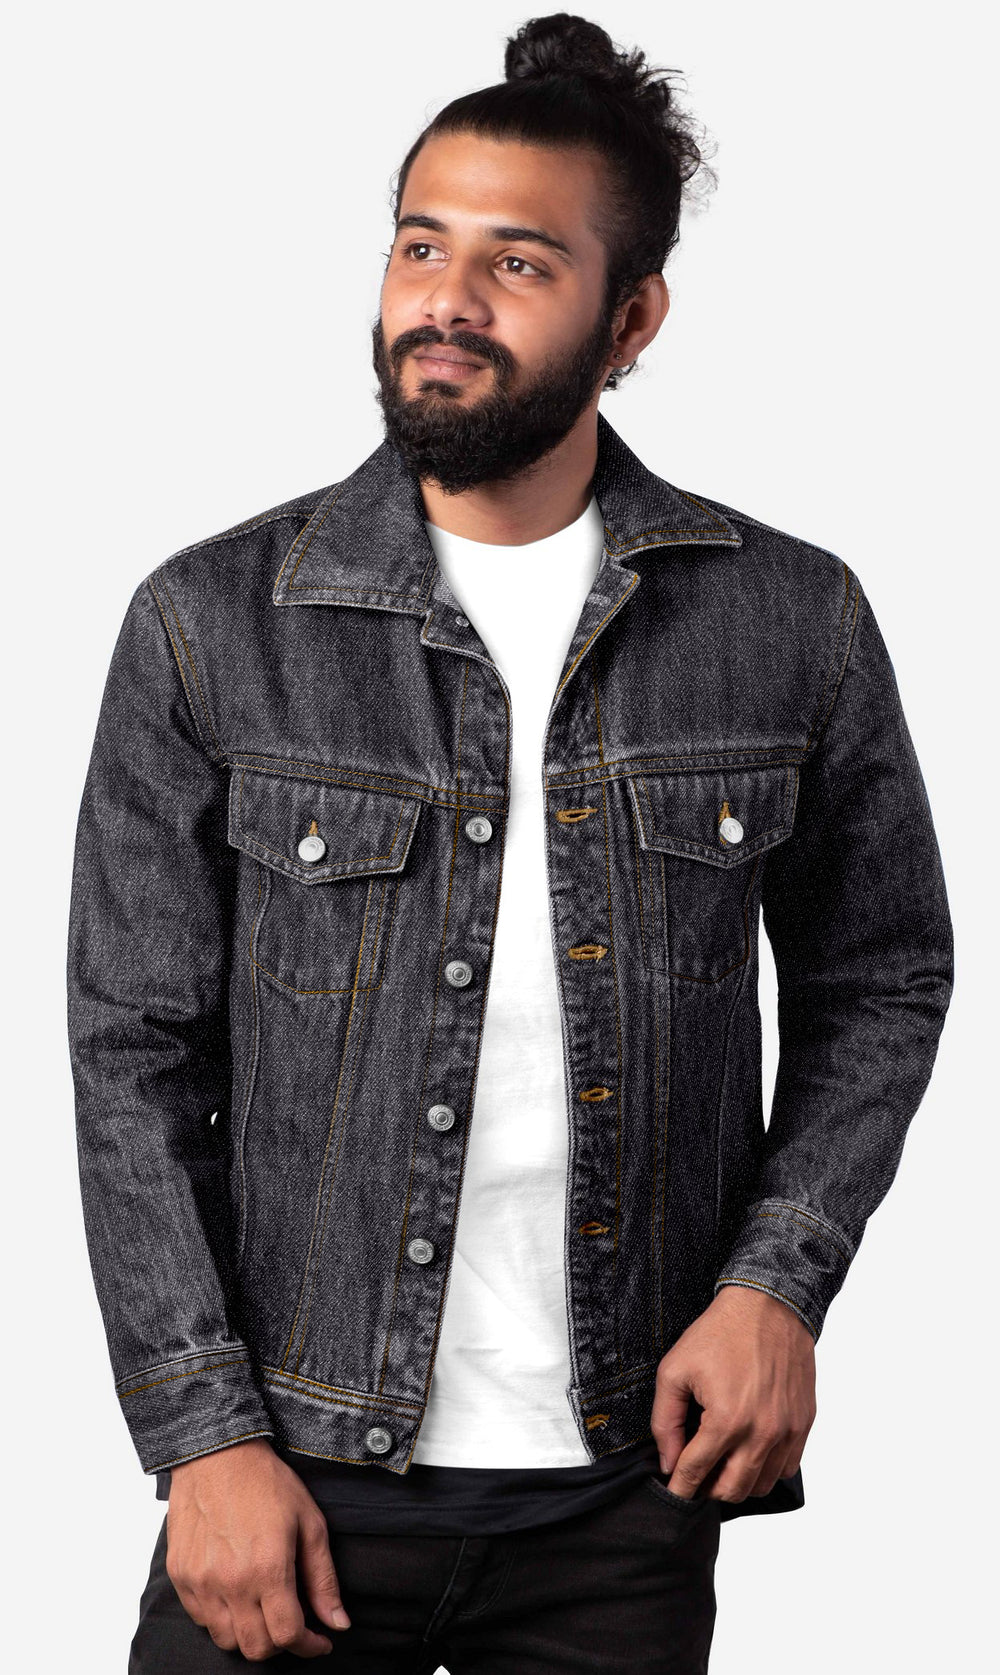 Denim Jacket in Luxire Signature Black Jeans (1738516103223)